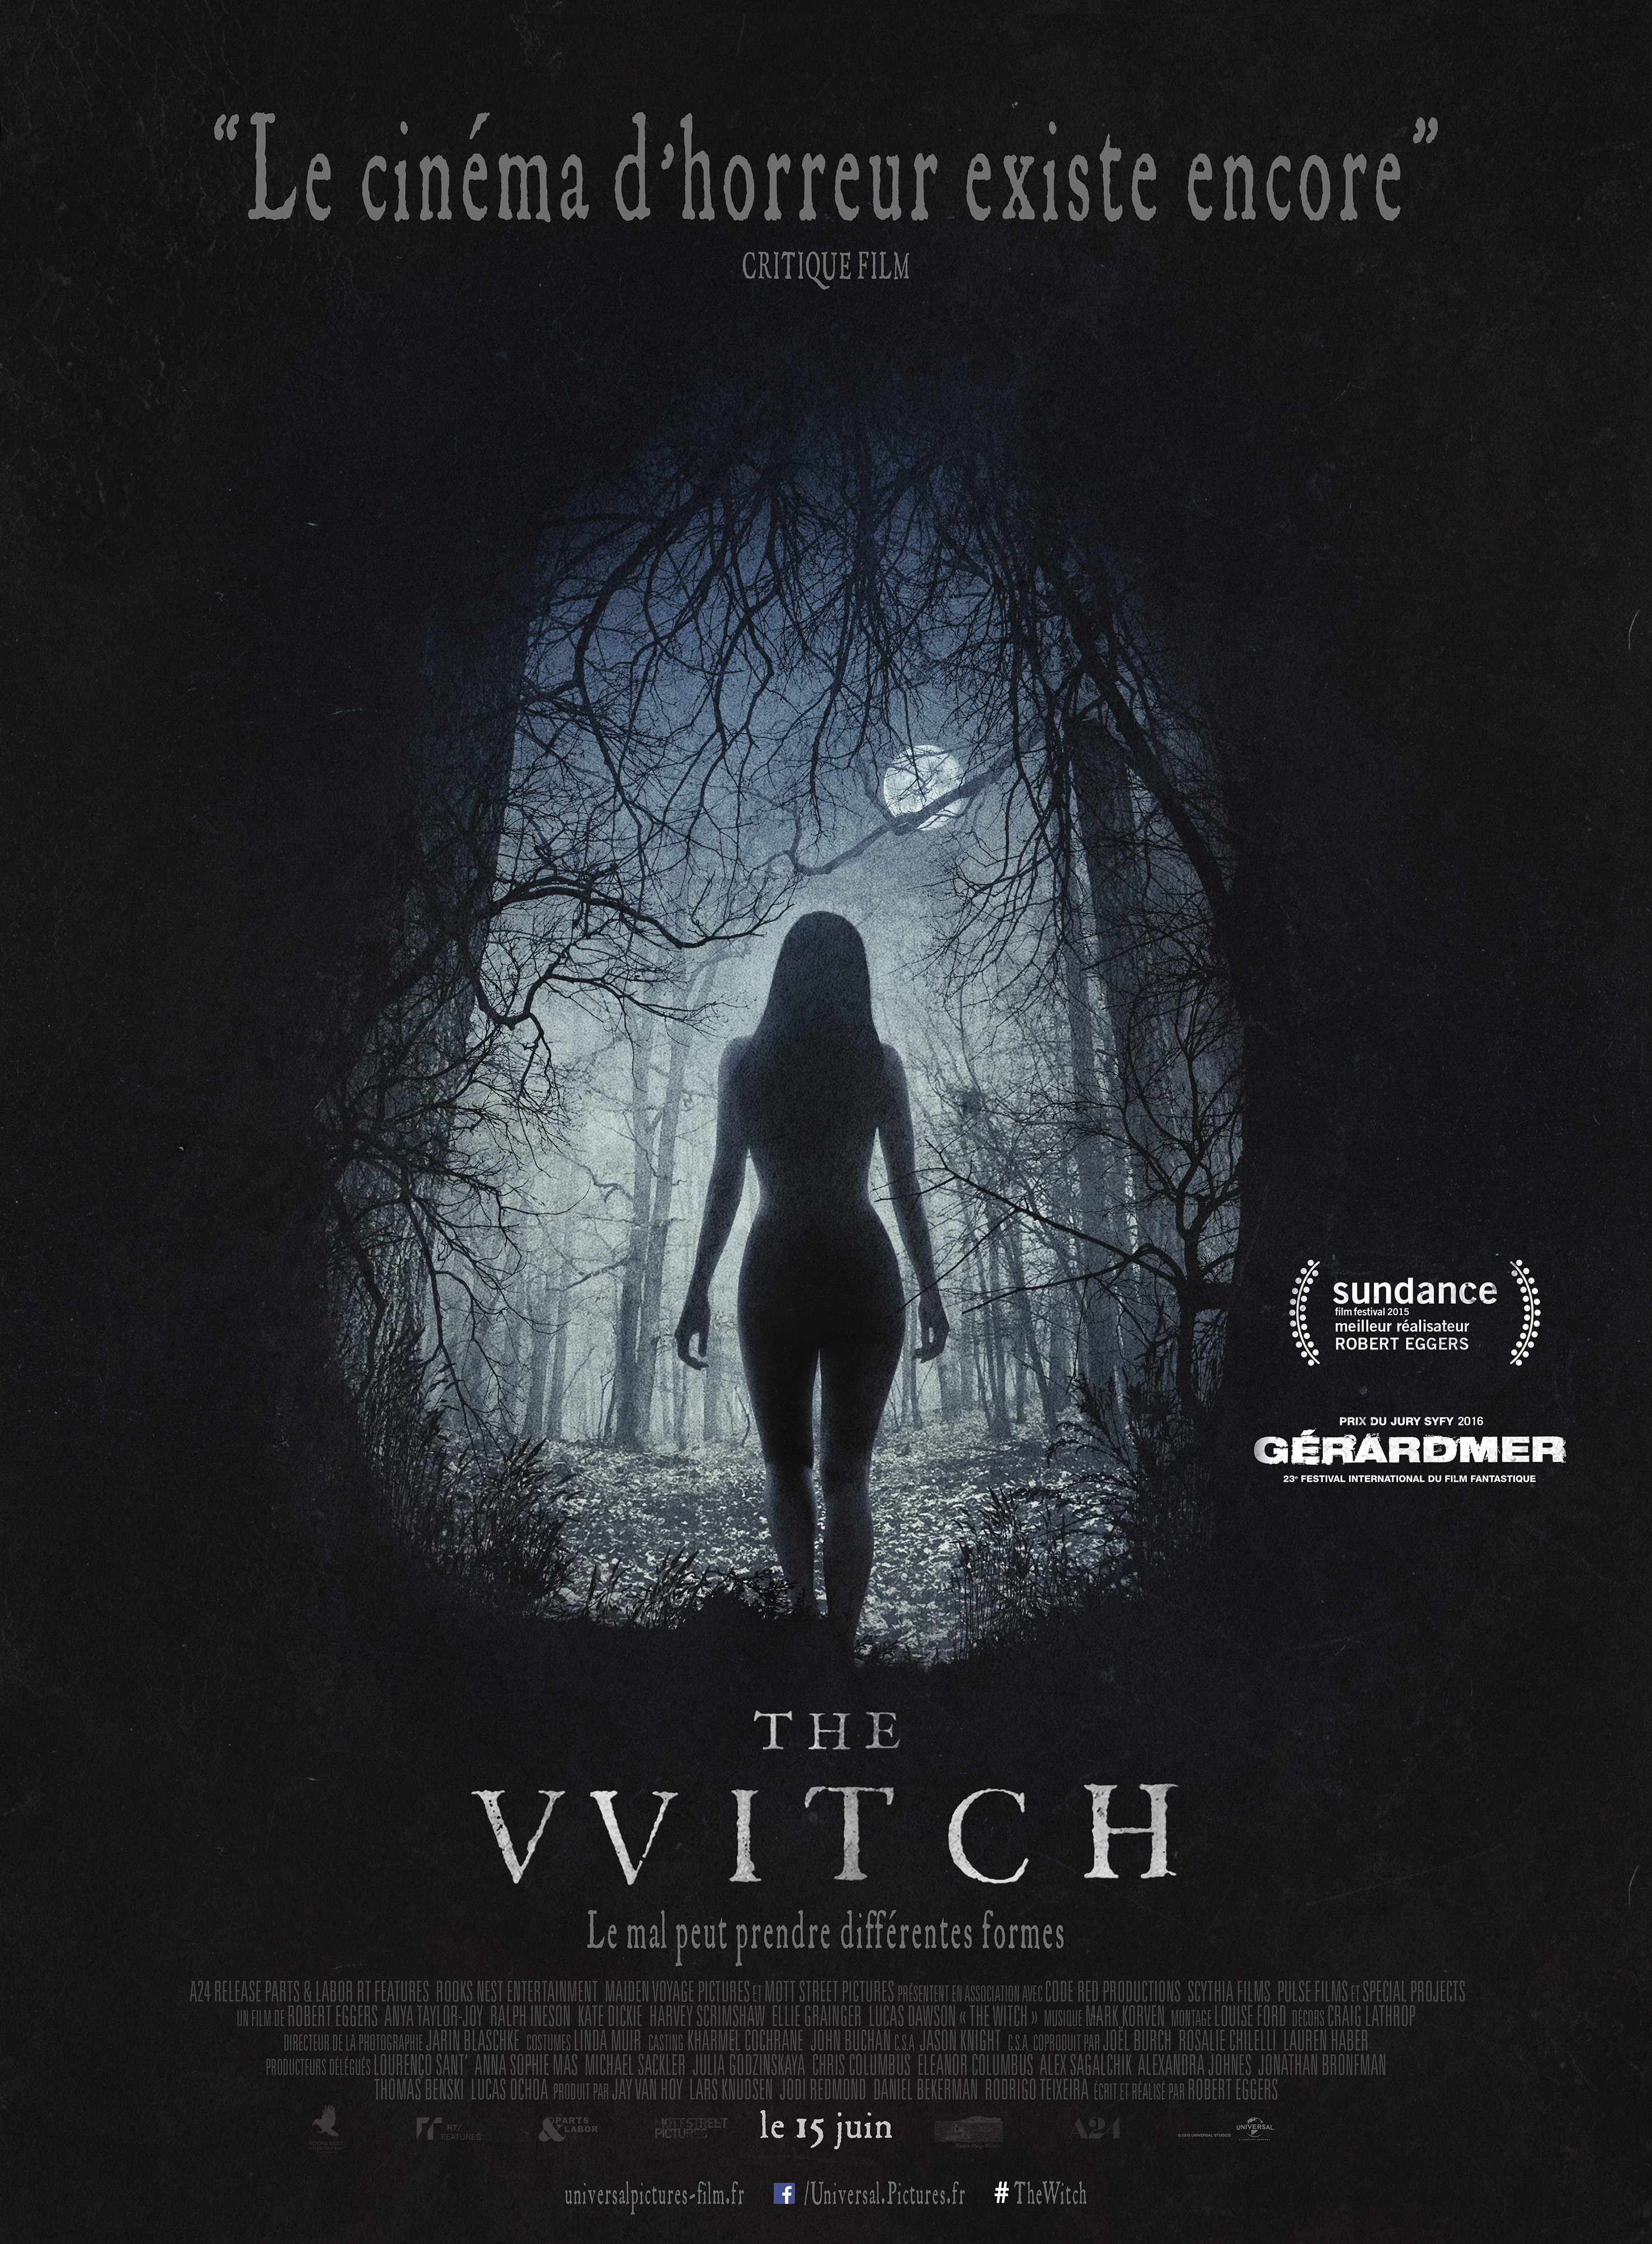 THE WITCH affiche française